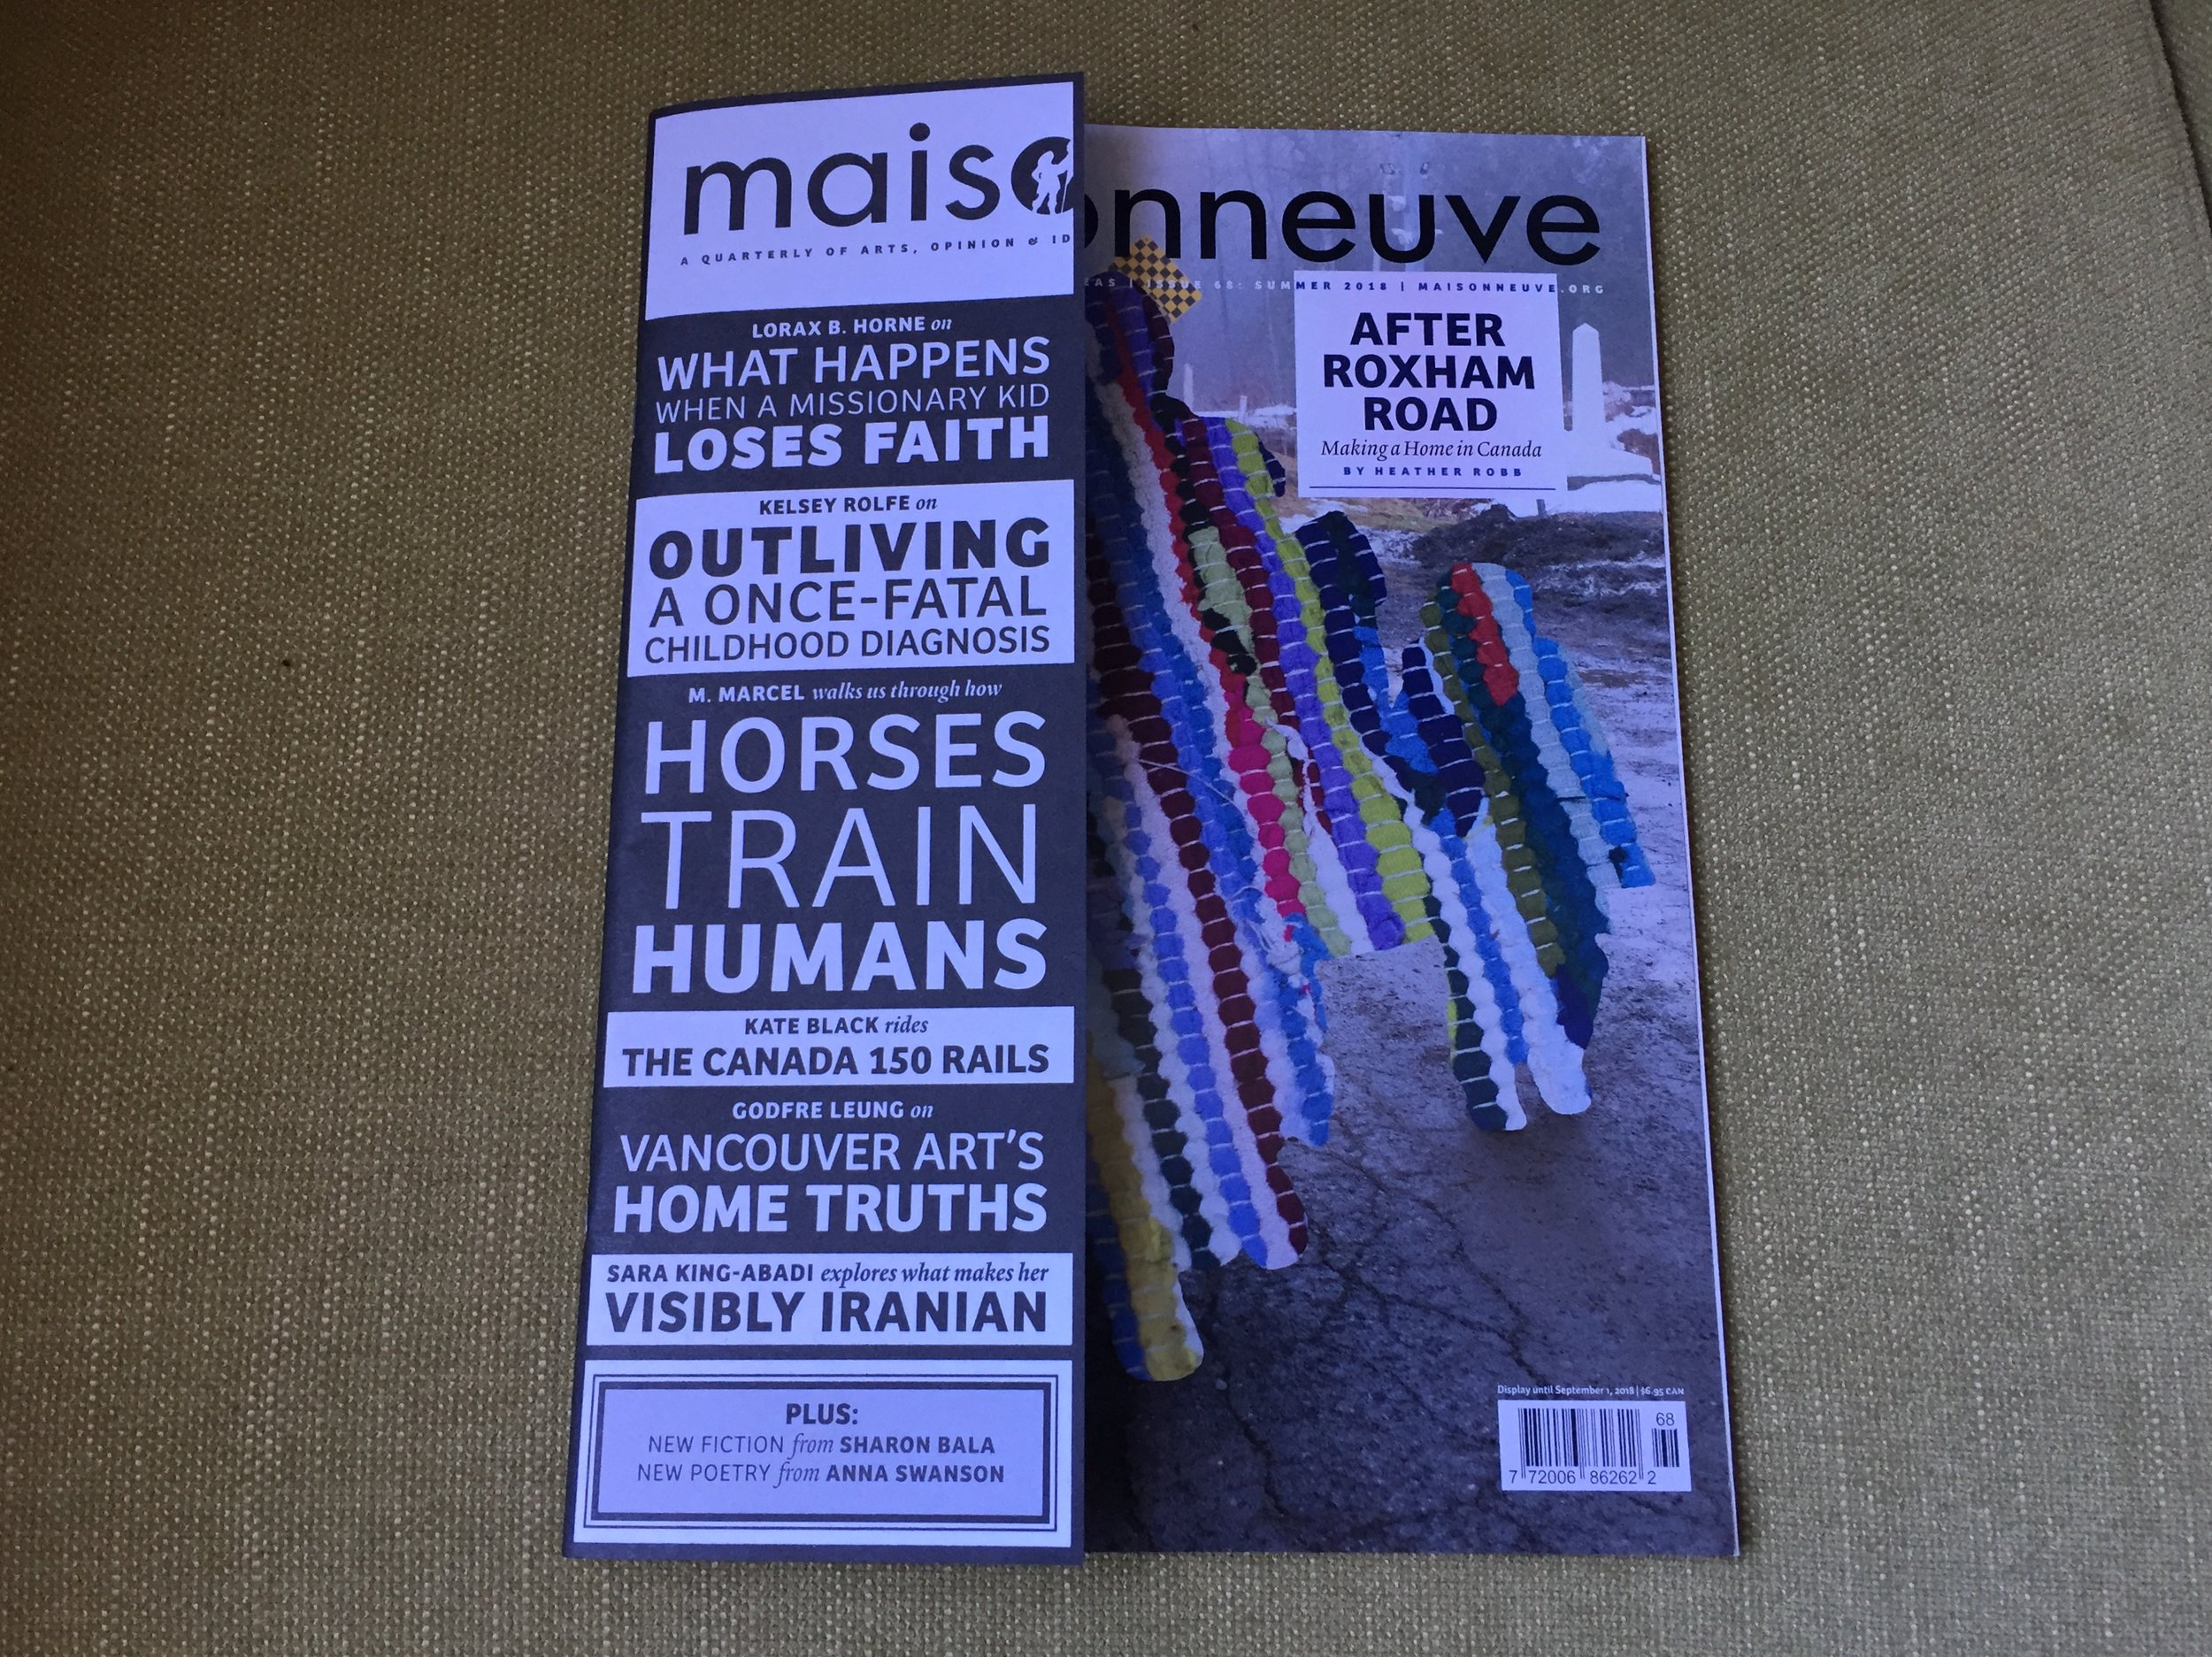 Maisonneuve, Summer 2018 issue